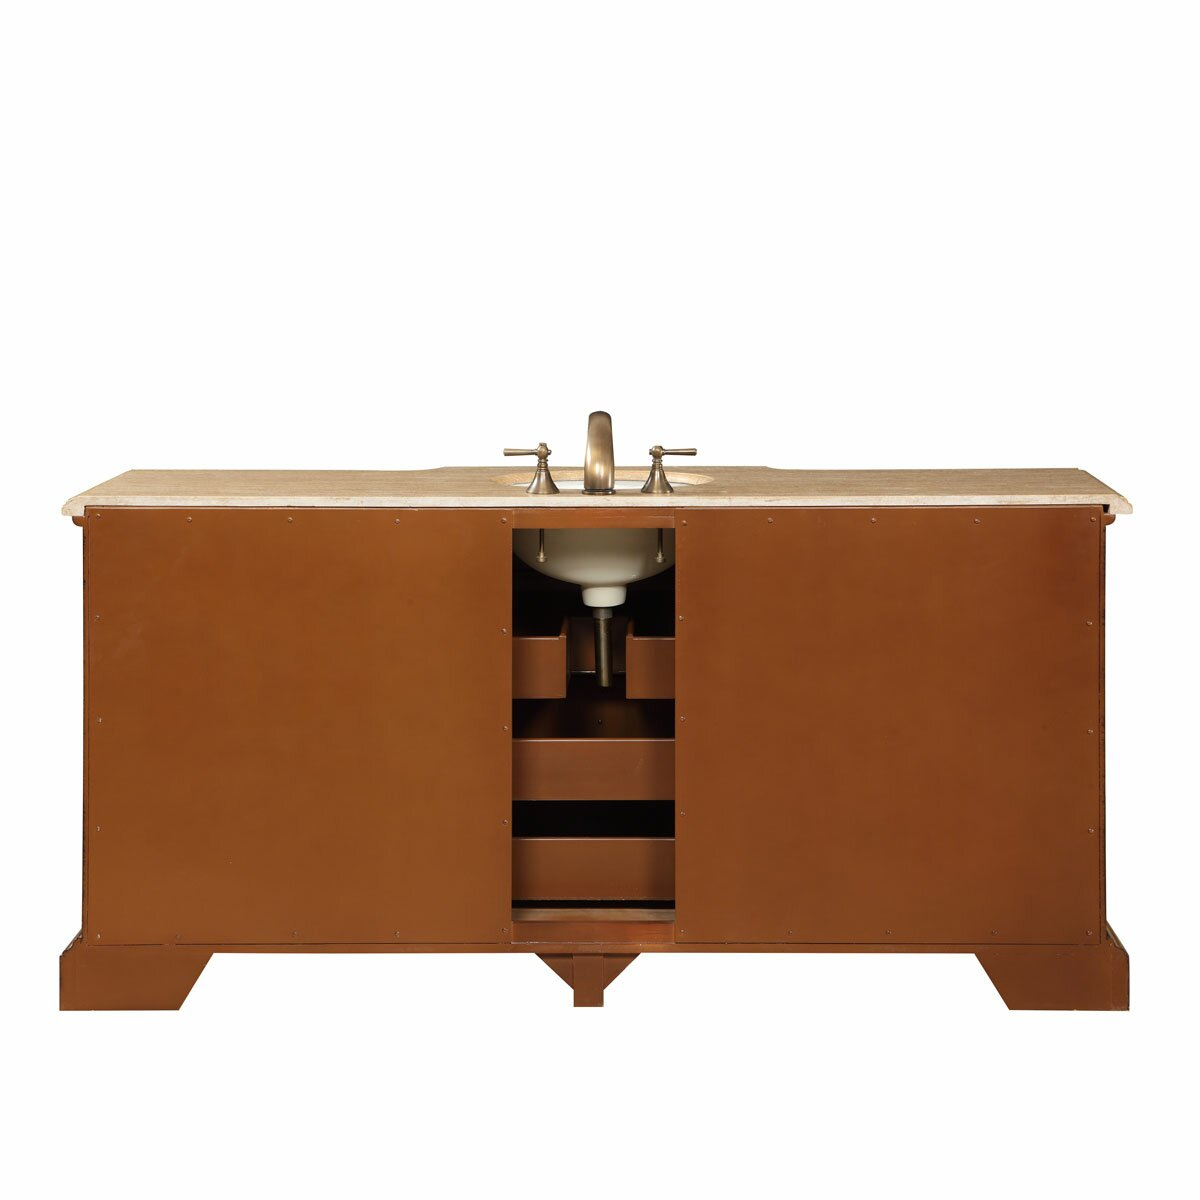 Silkroad exclusive 72 single sink bathroom vanity set reviews wayfair Bathroom sink and vanity sets